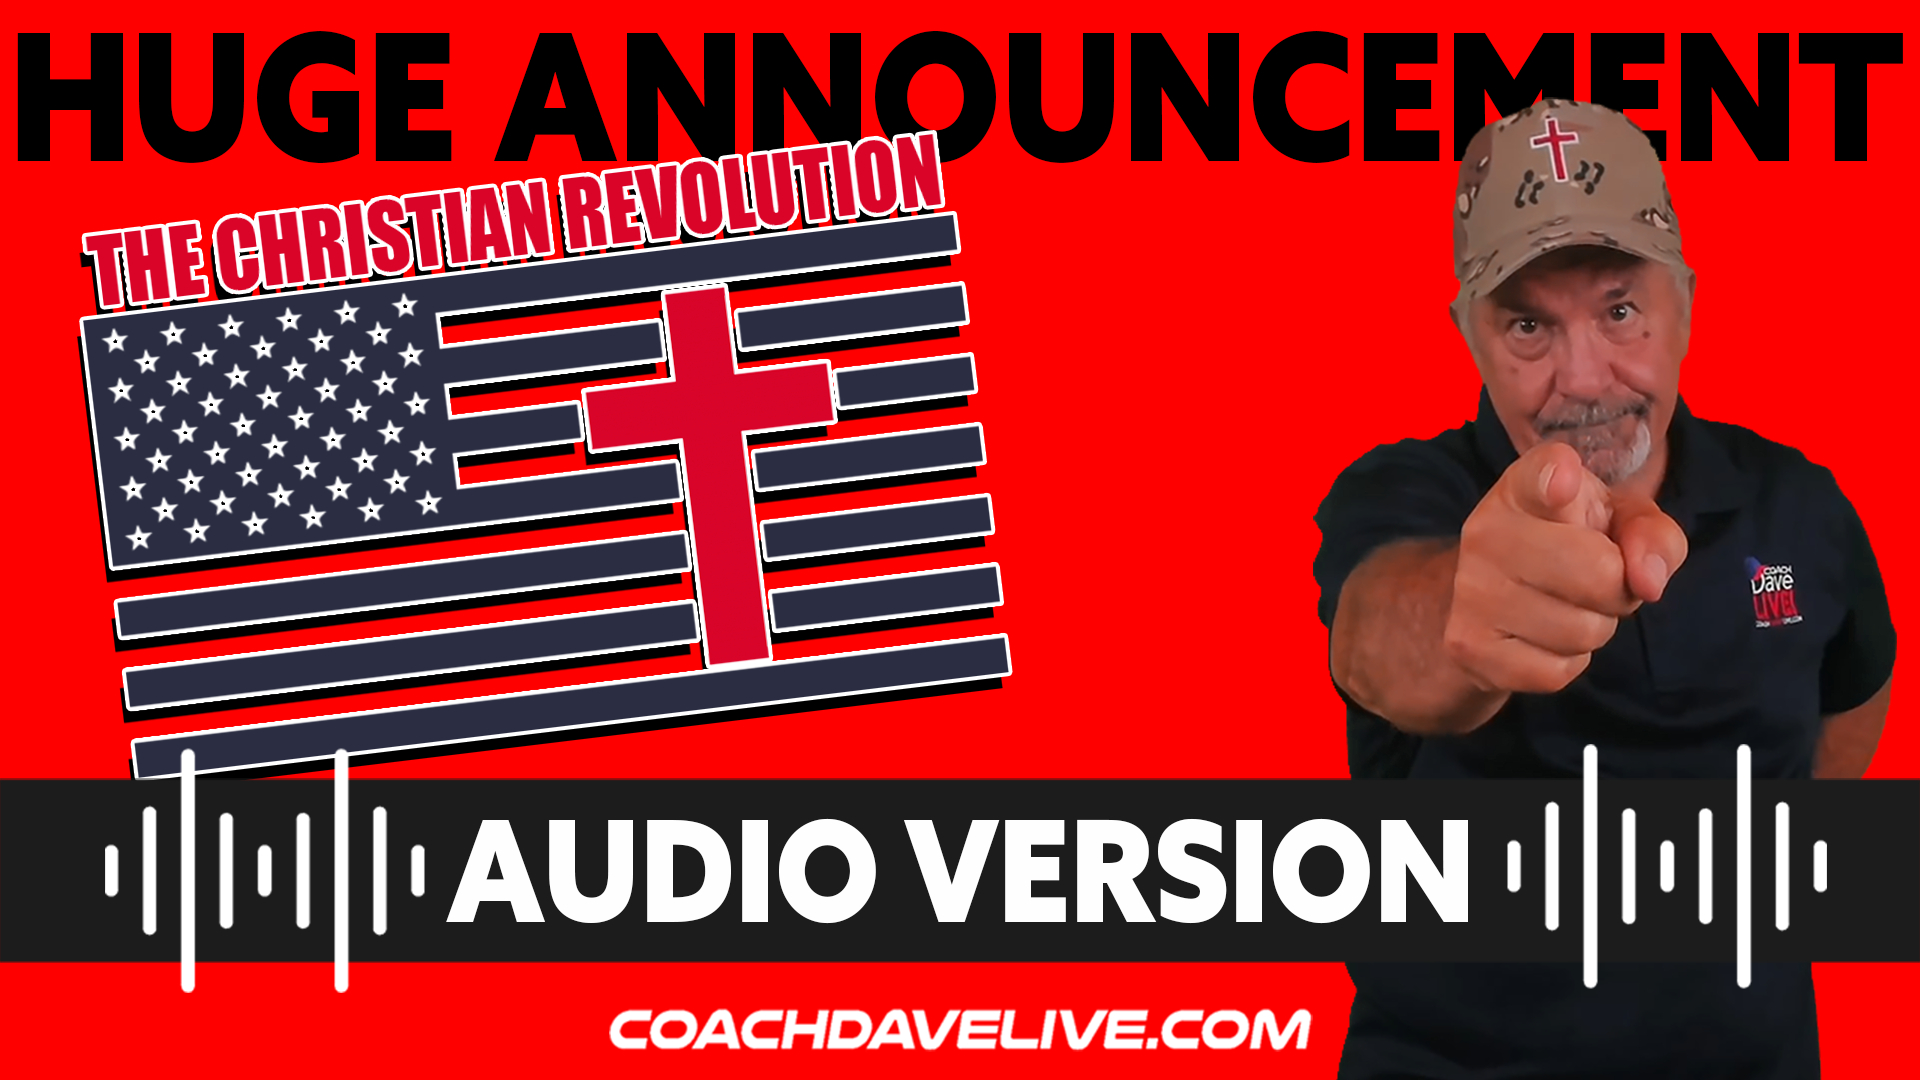 Coach Dave LIVE | 8-30-2021 | HUGE ANNOUNCEMENT - AUDIO ONLY